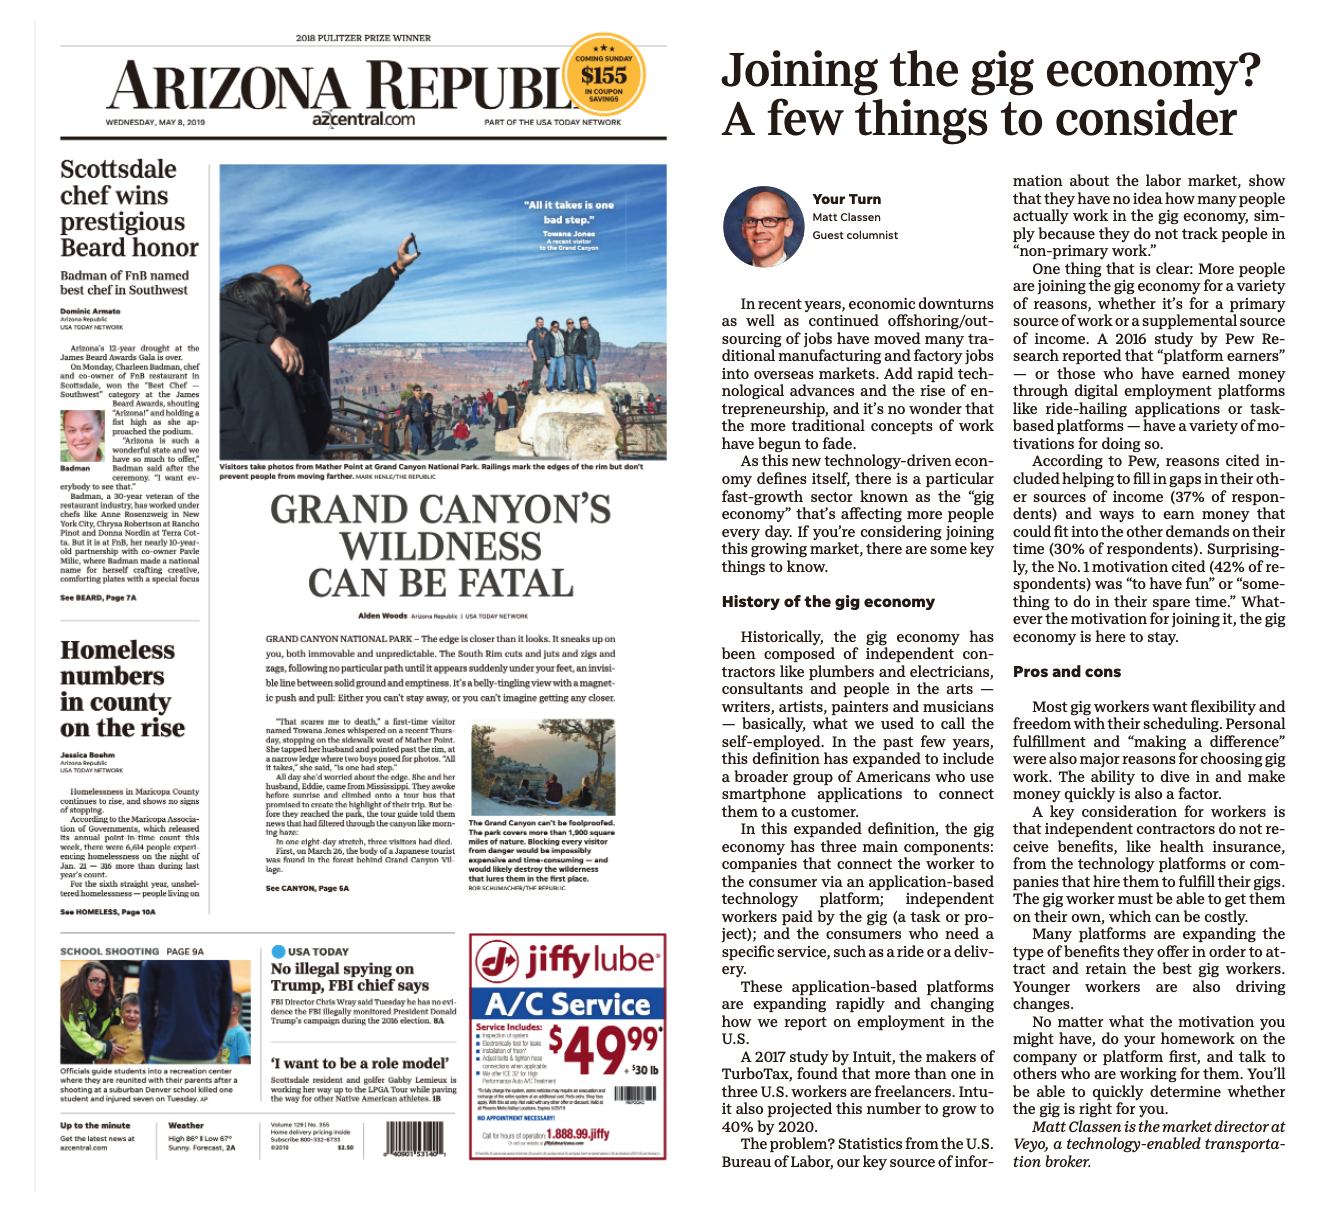 Veyo highlighted in the Arizona Republic